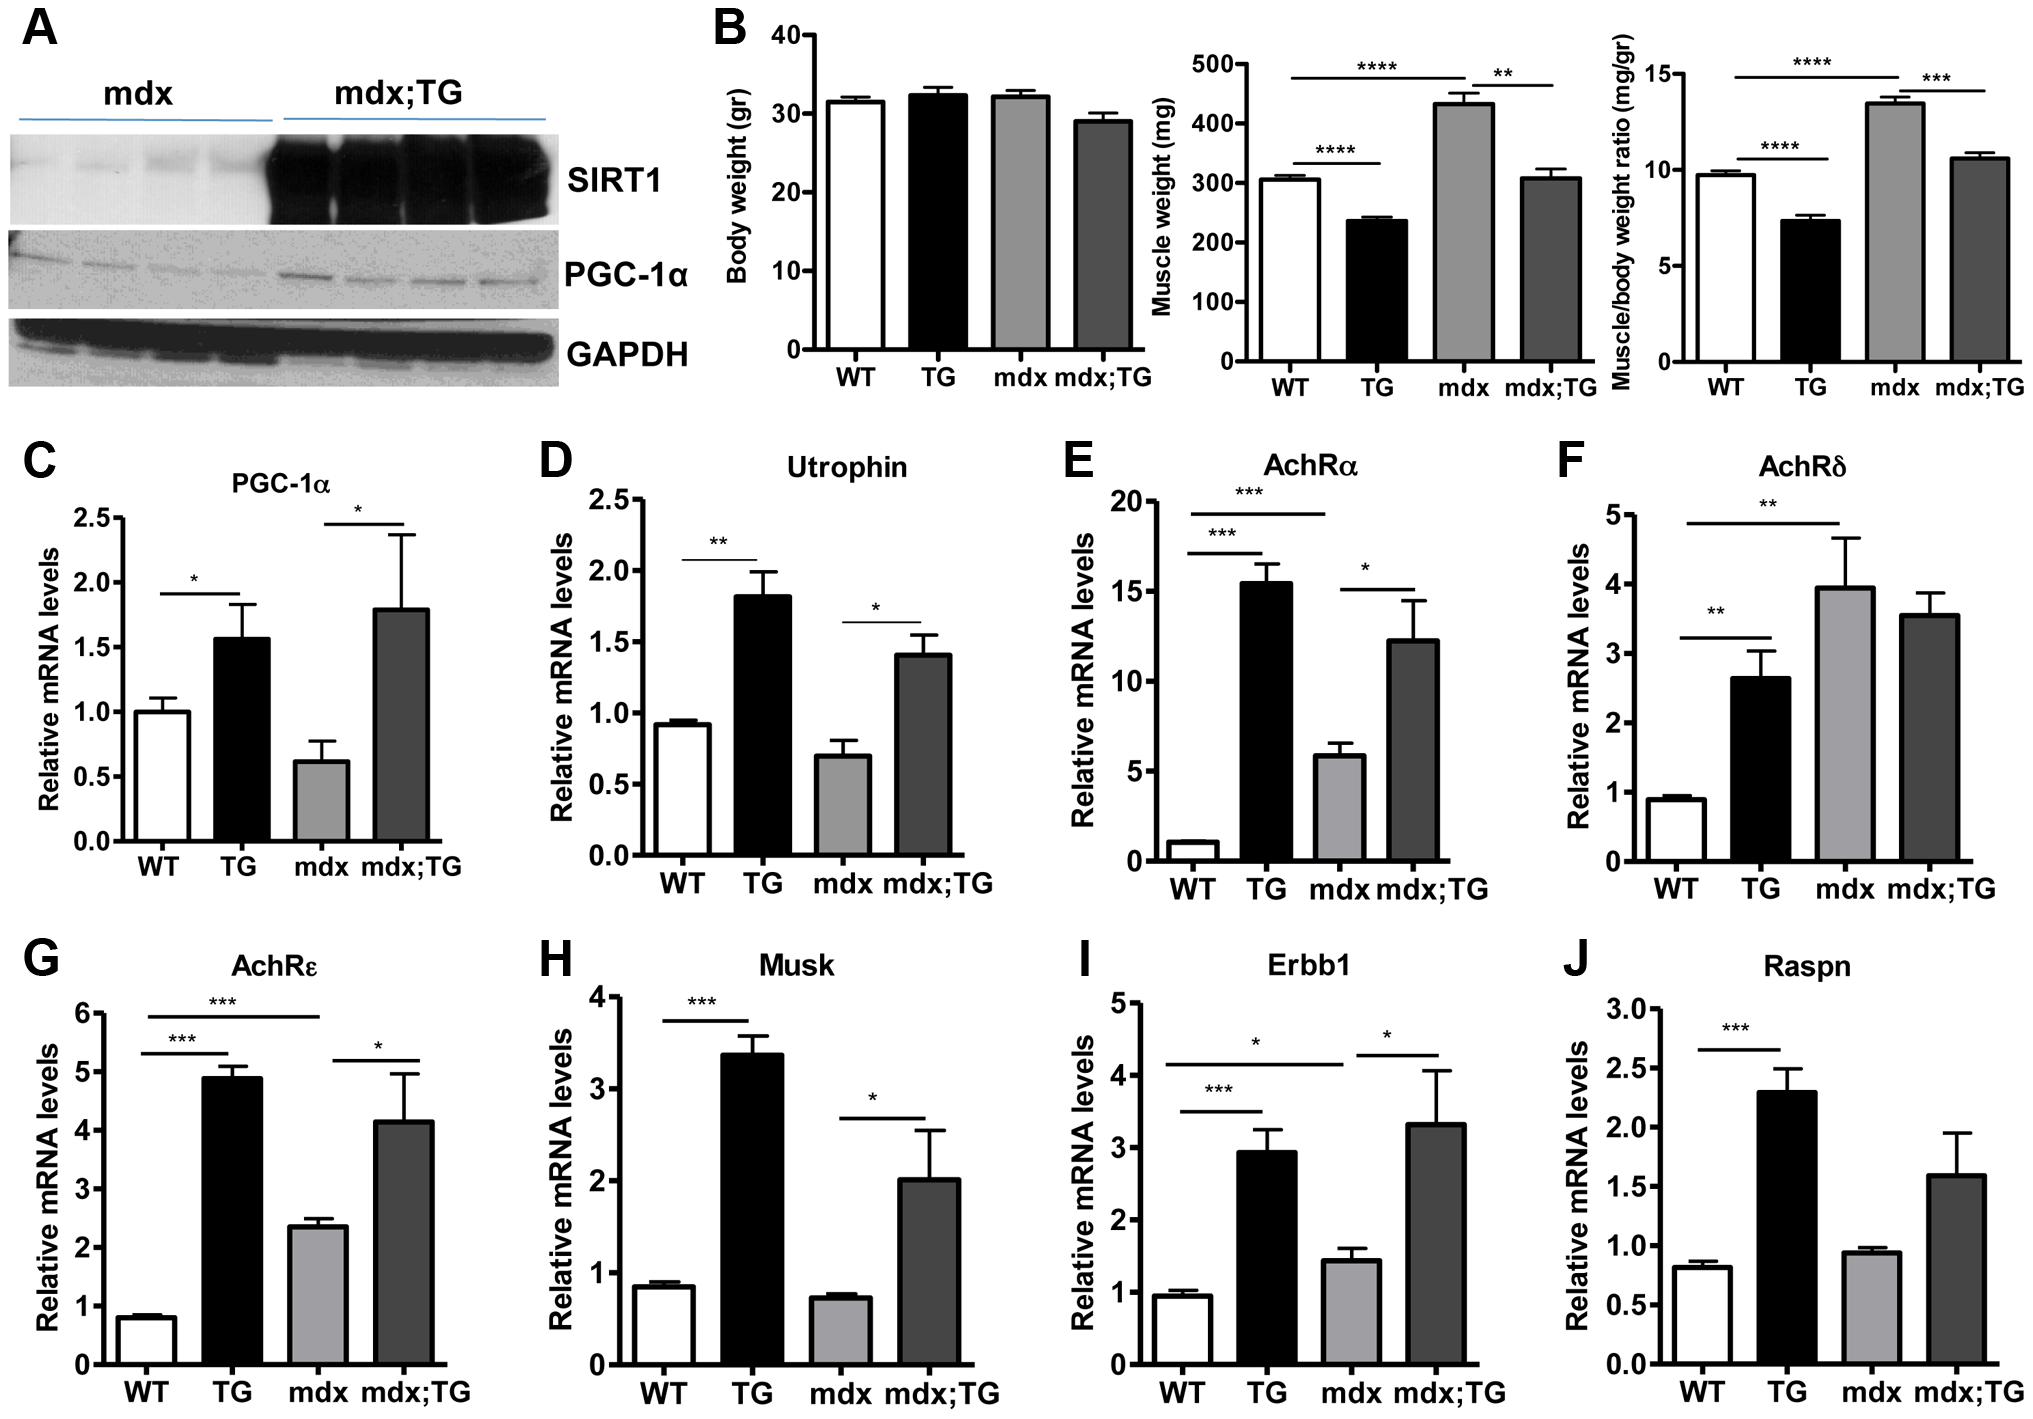 SIRT1 overexpression in skeletal muscle of WT and mdx mice induces the expression of neuromuscular junction genes and utrophin.